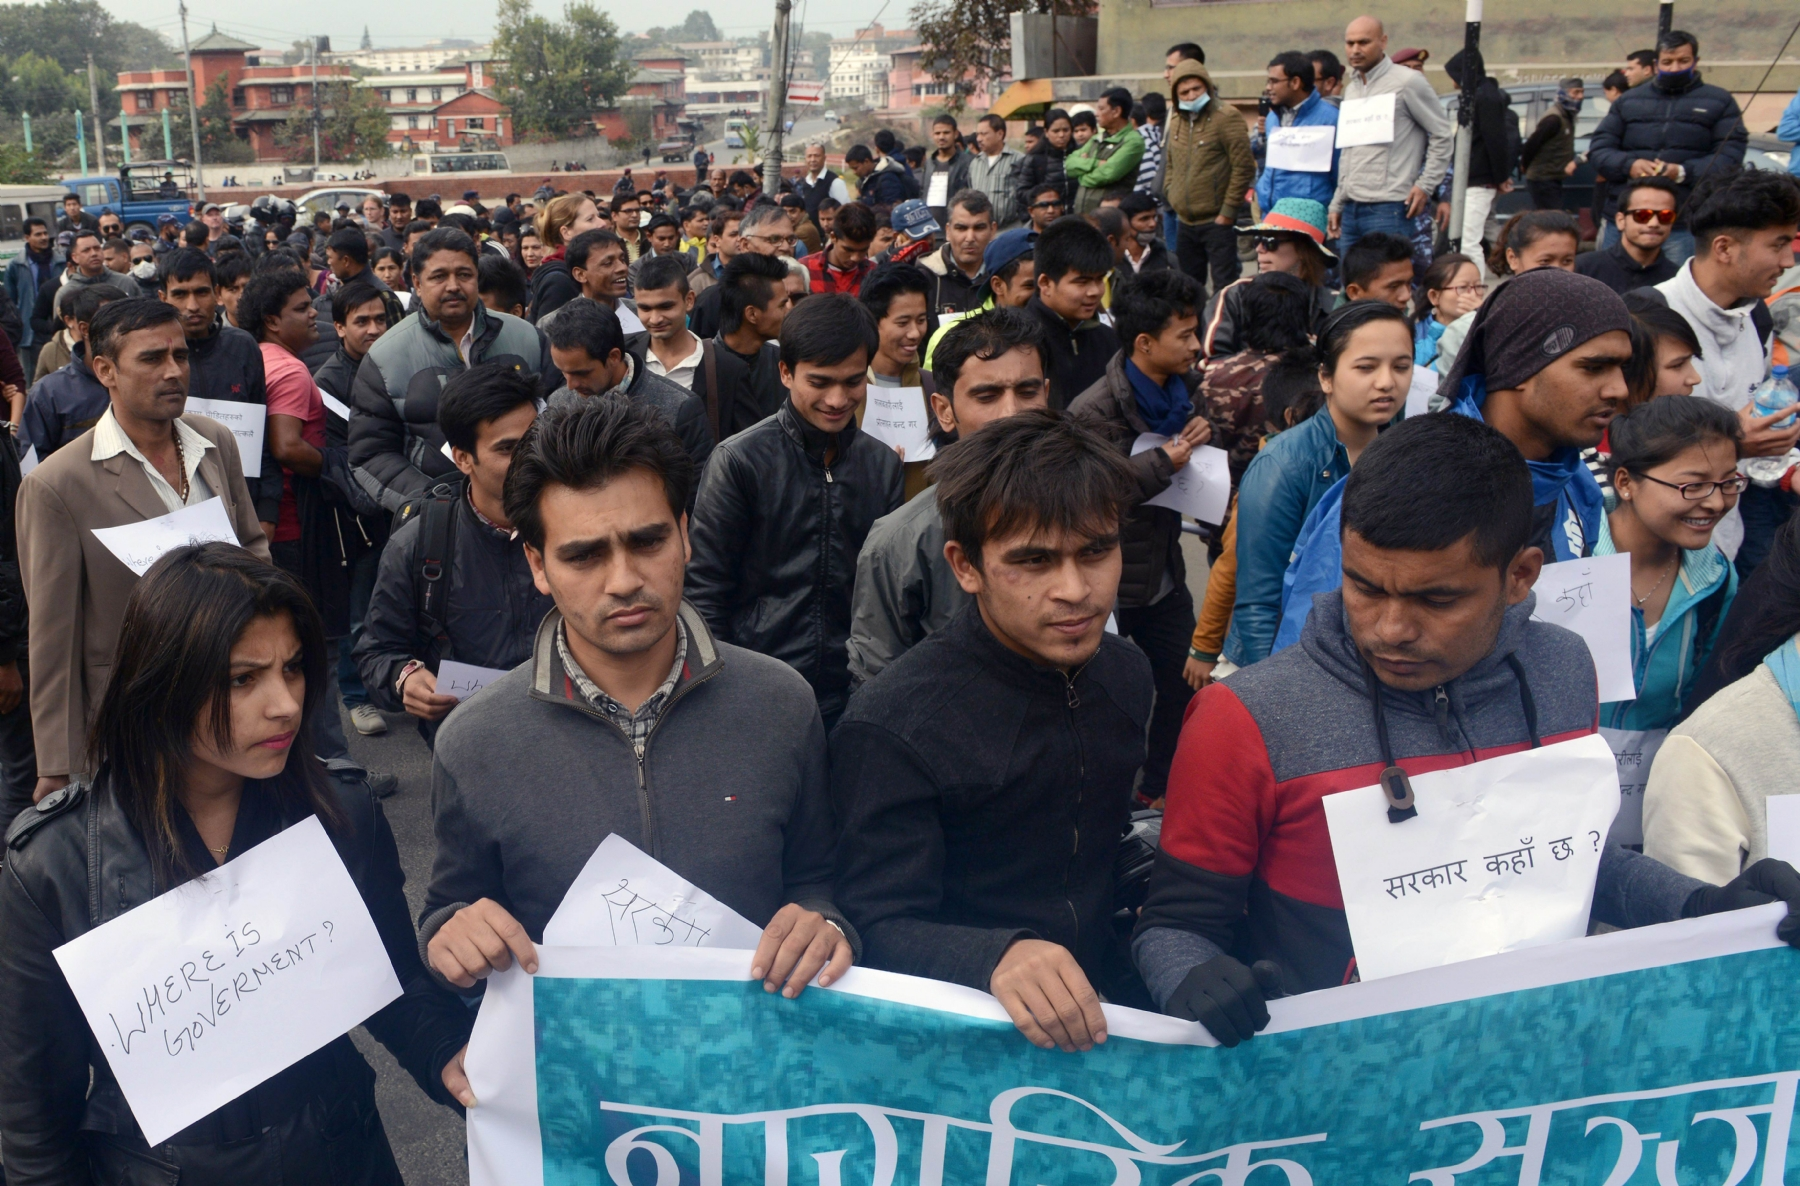 Madhesis submit 11-point demand to Nepal PM to end agitation